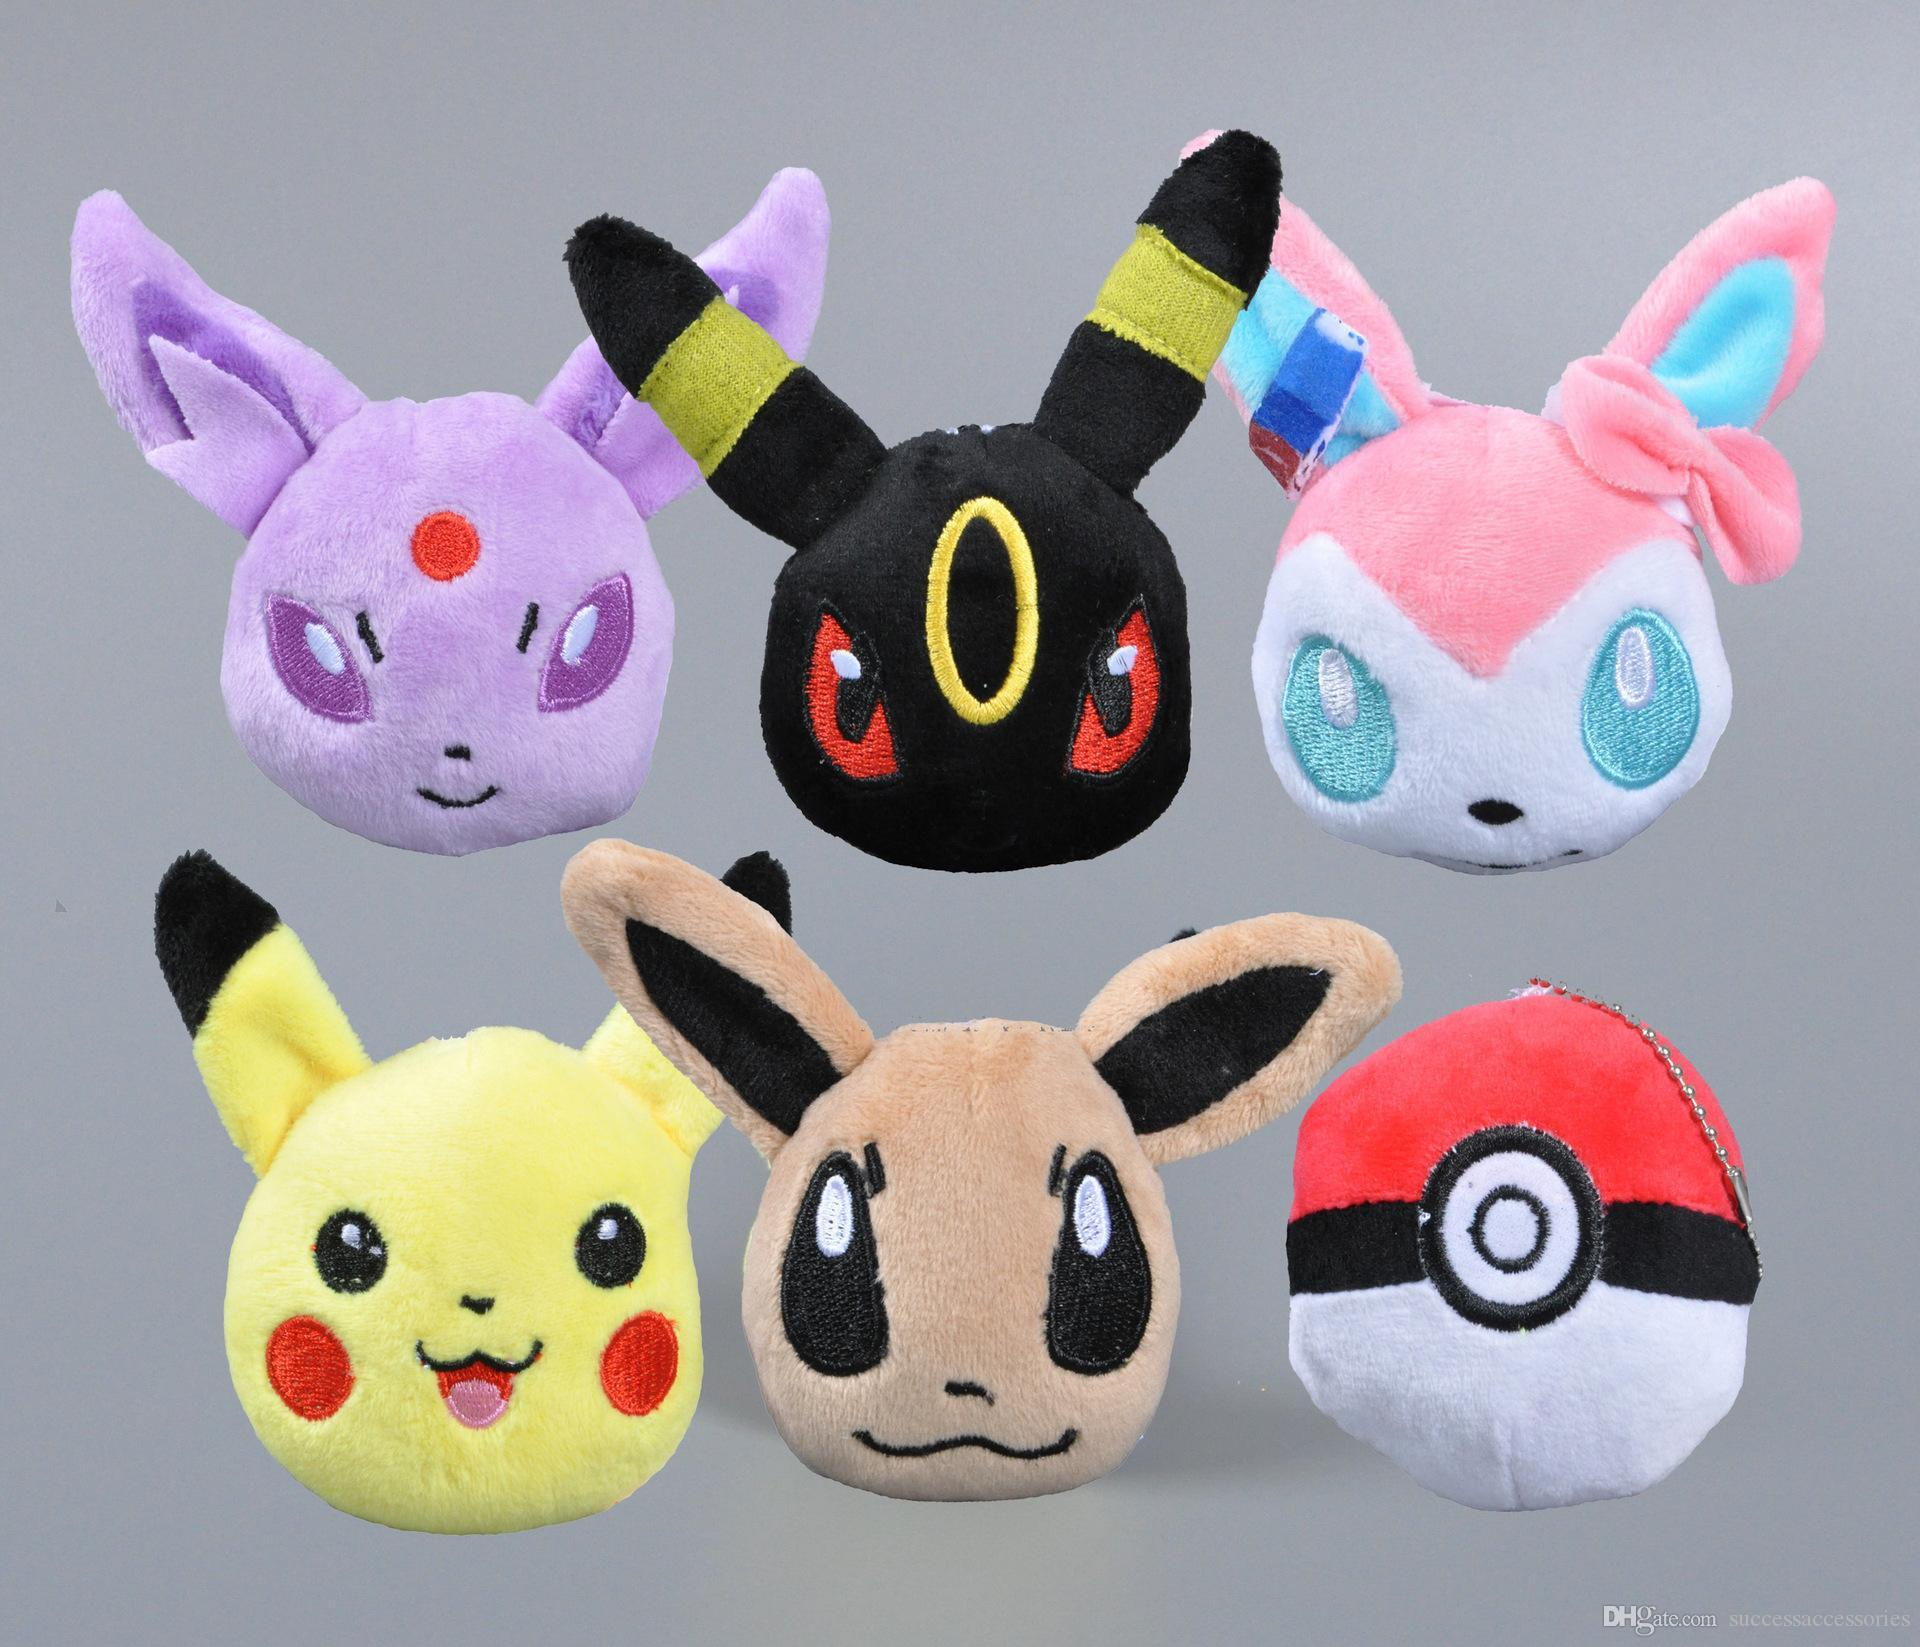 Buy Cheap Stuffed Animals & Toys For Big Save Poke Plush Toys 8cm